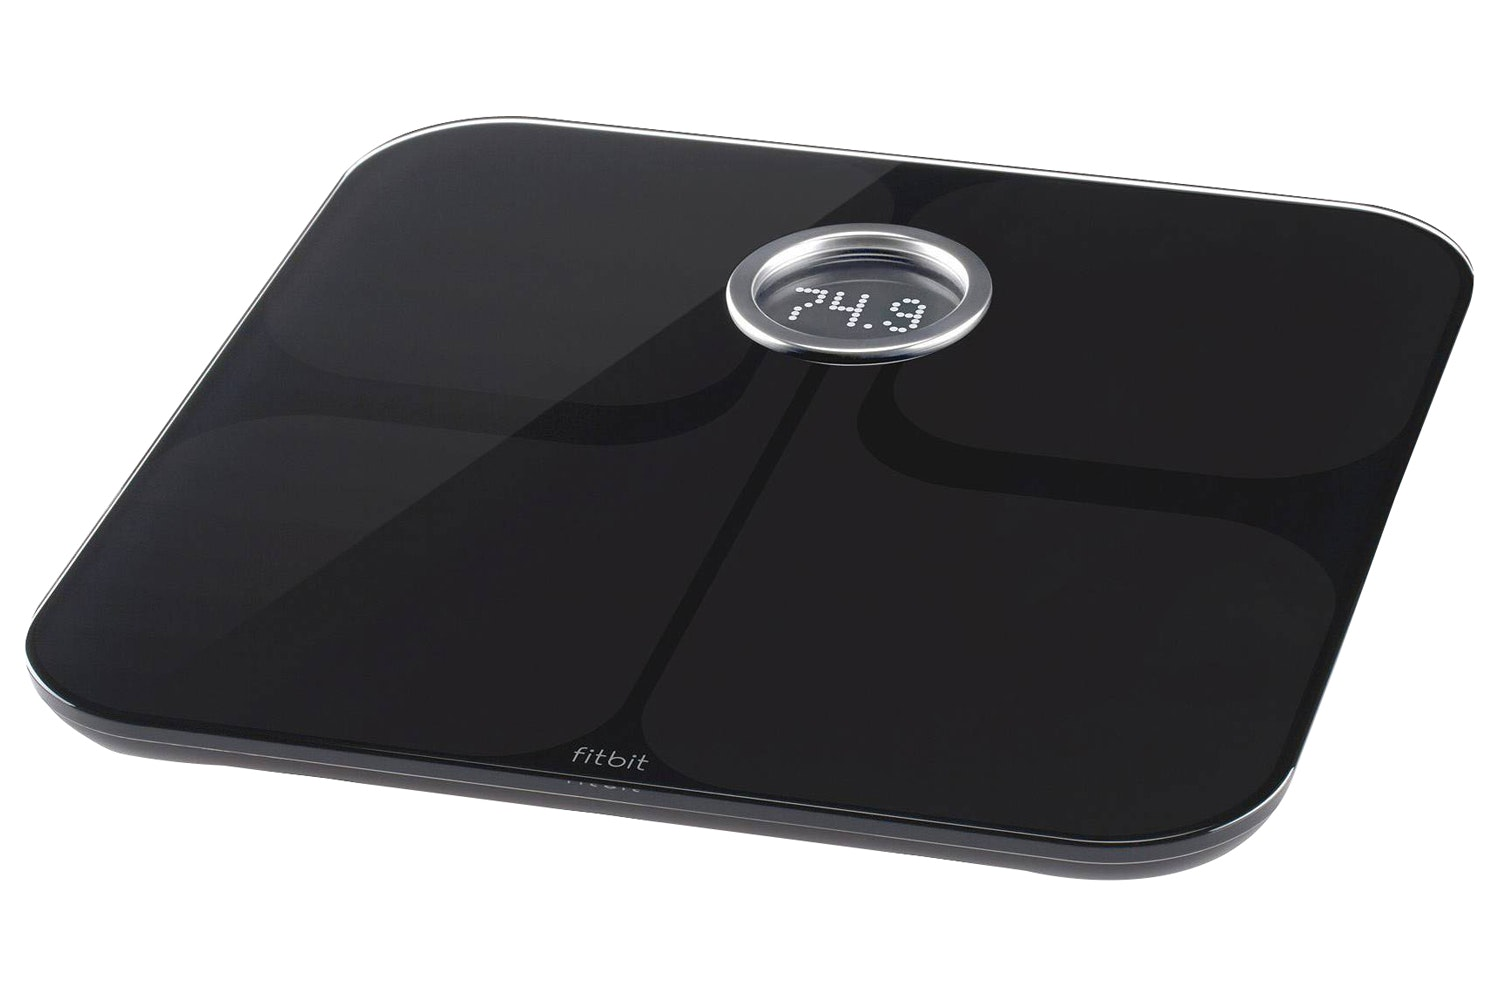 Fitbit Aria Wi-Fi Smart Scale | Black